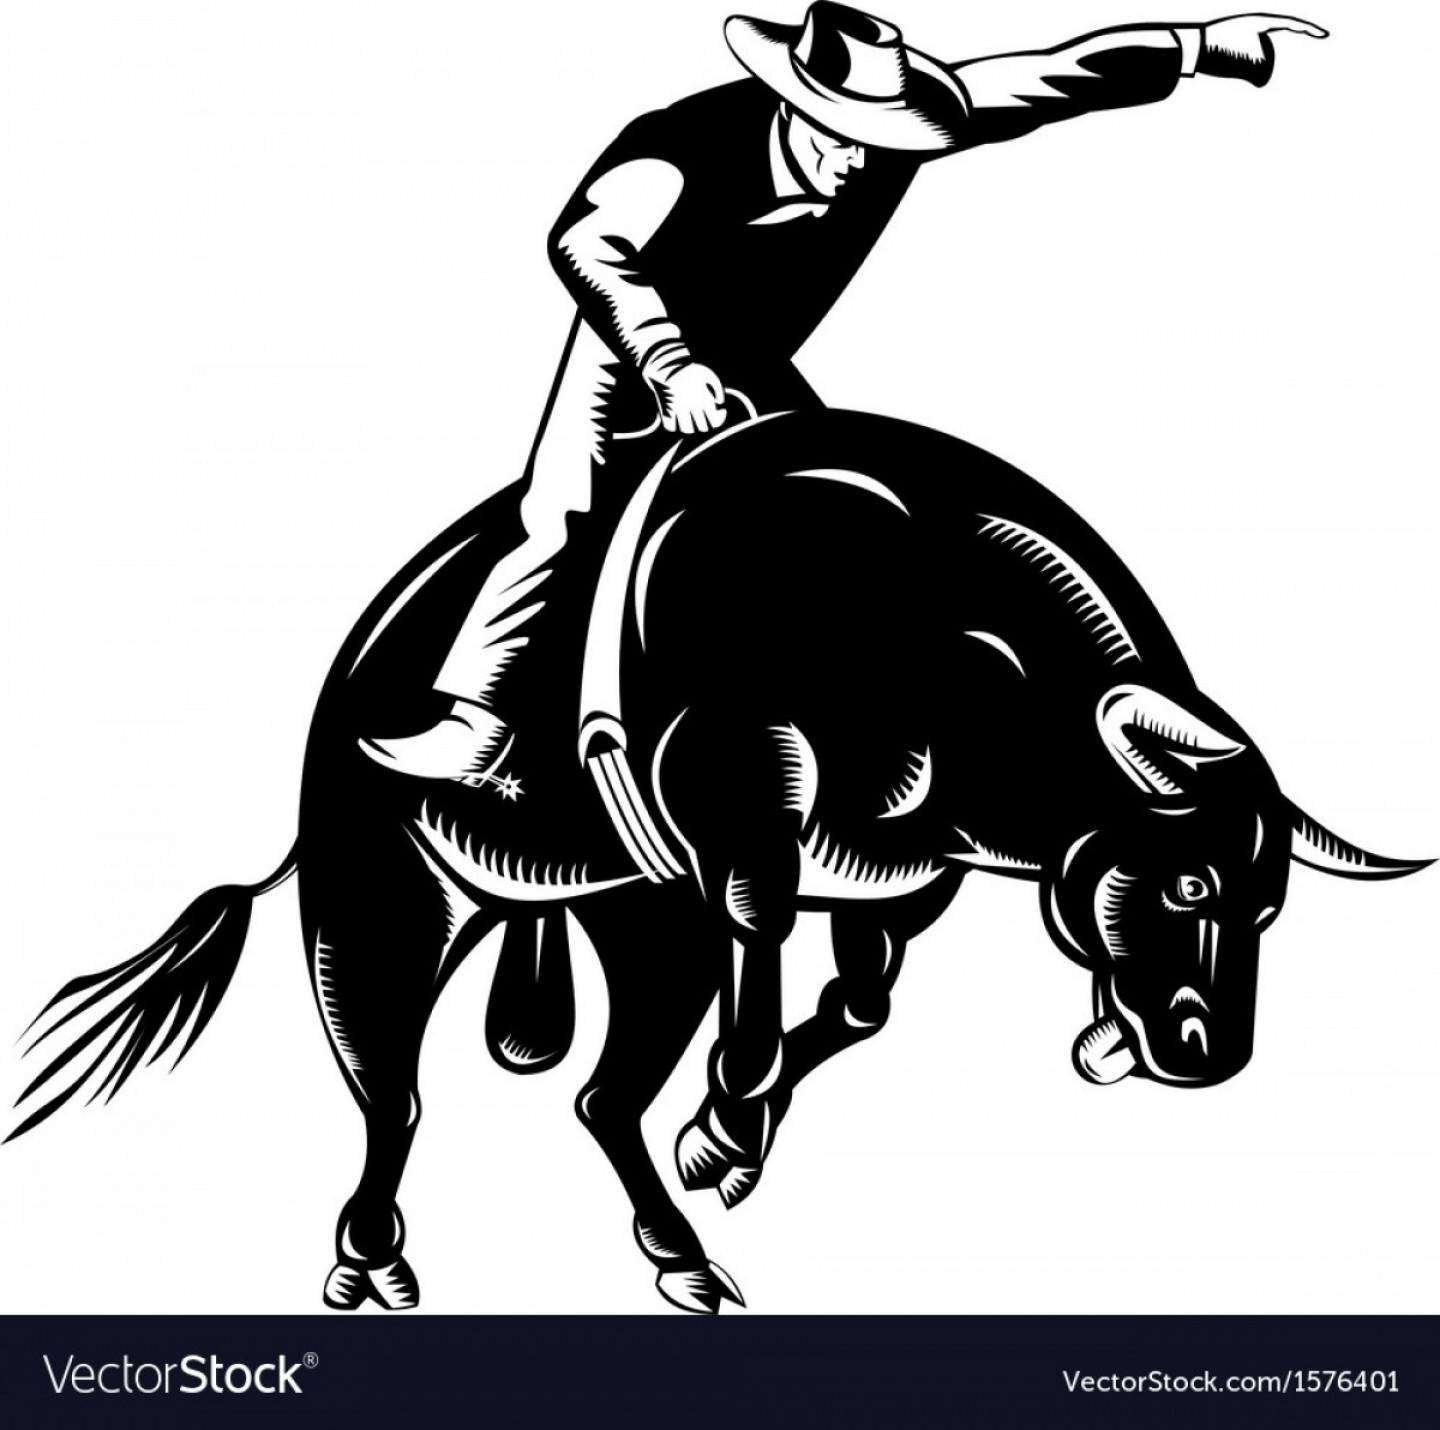 Praying Cowboy Vector: Rodeo Cowboy Bull Riding Retro Vector